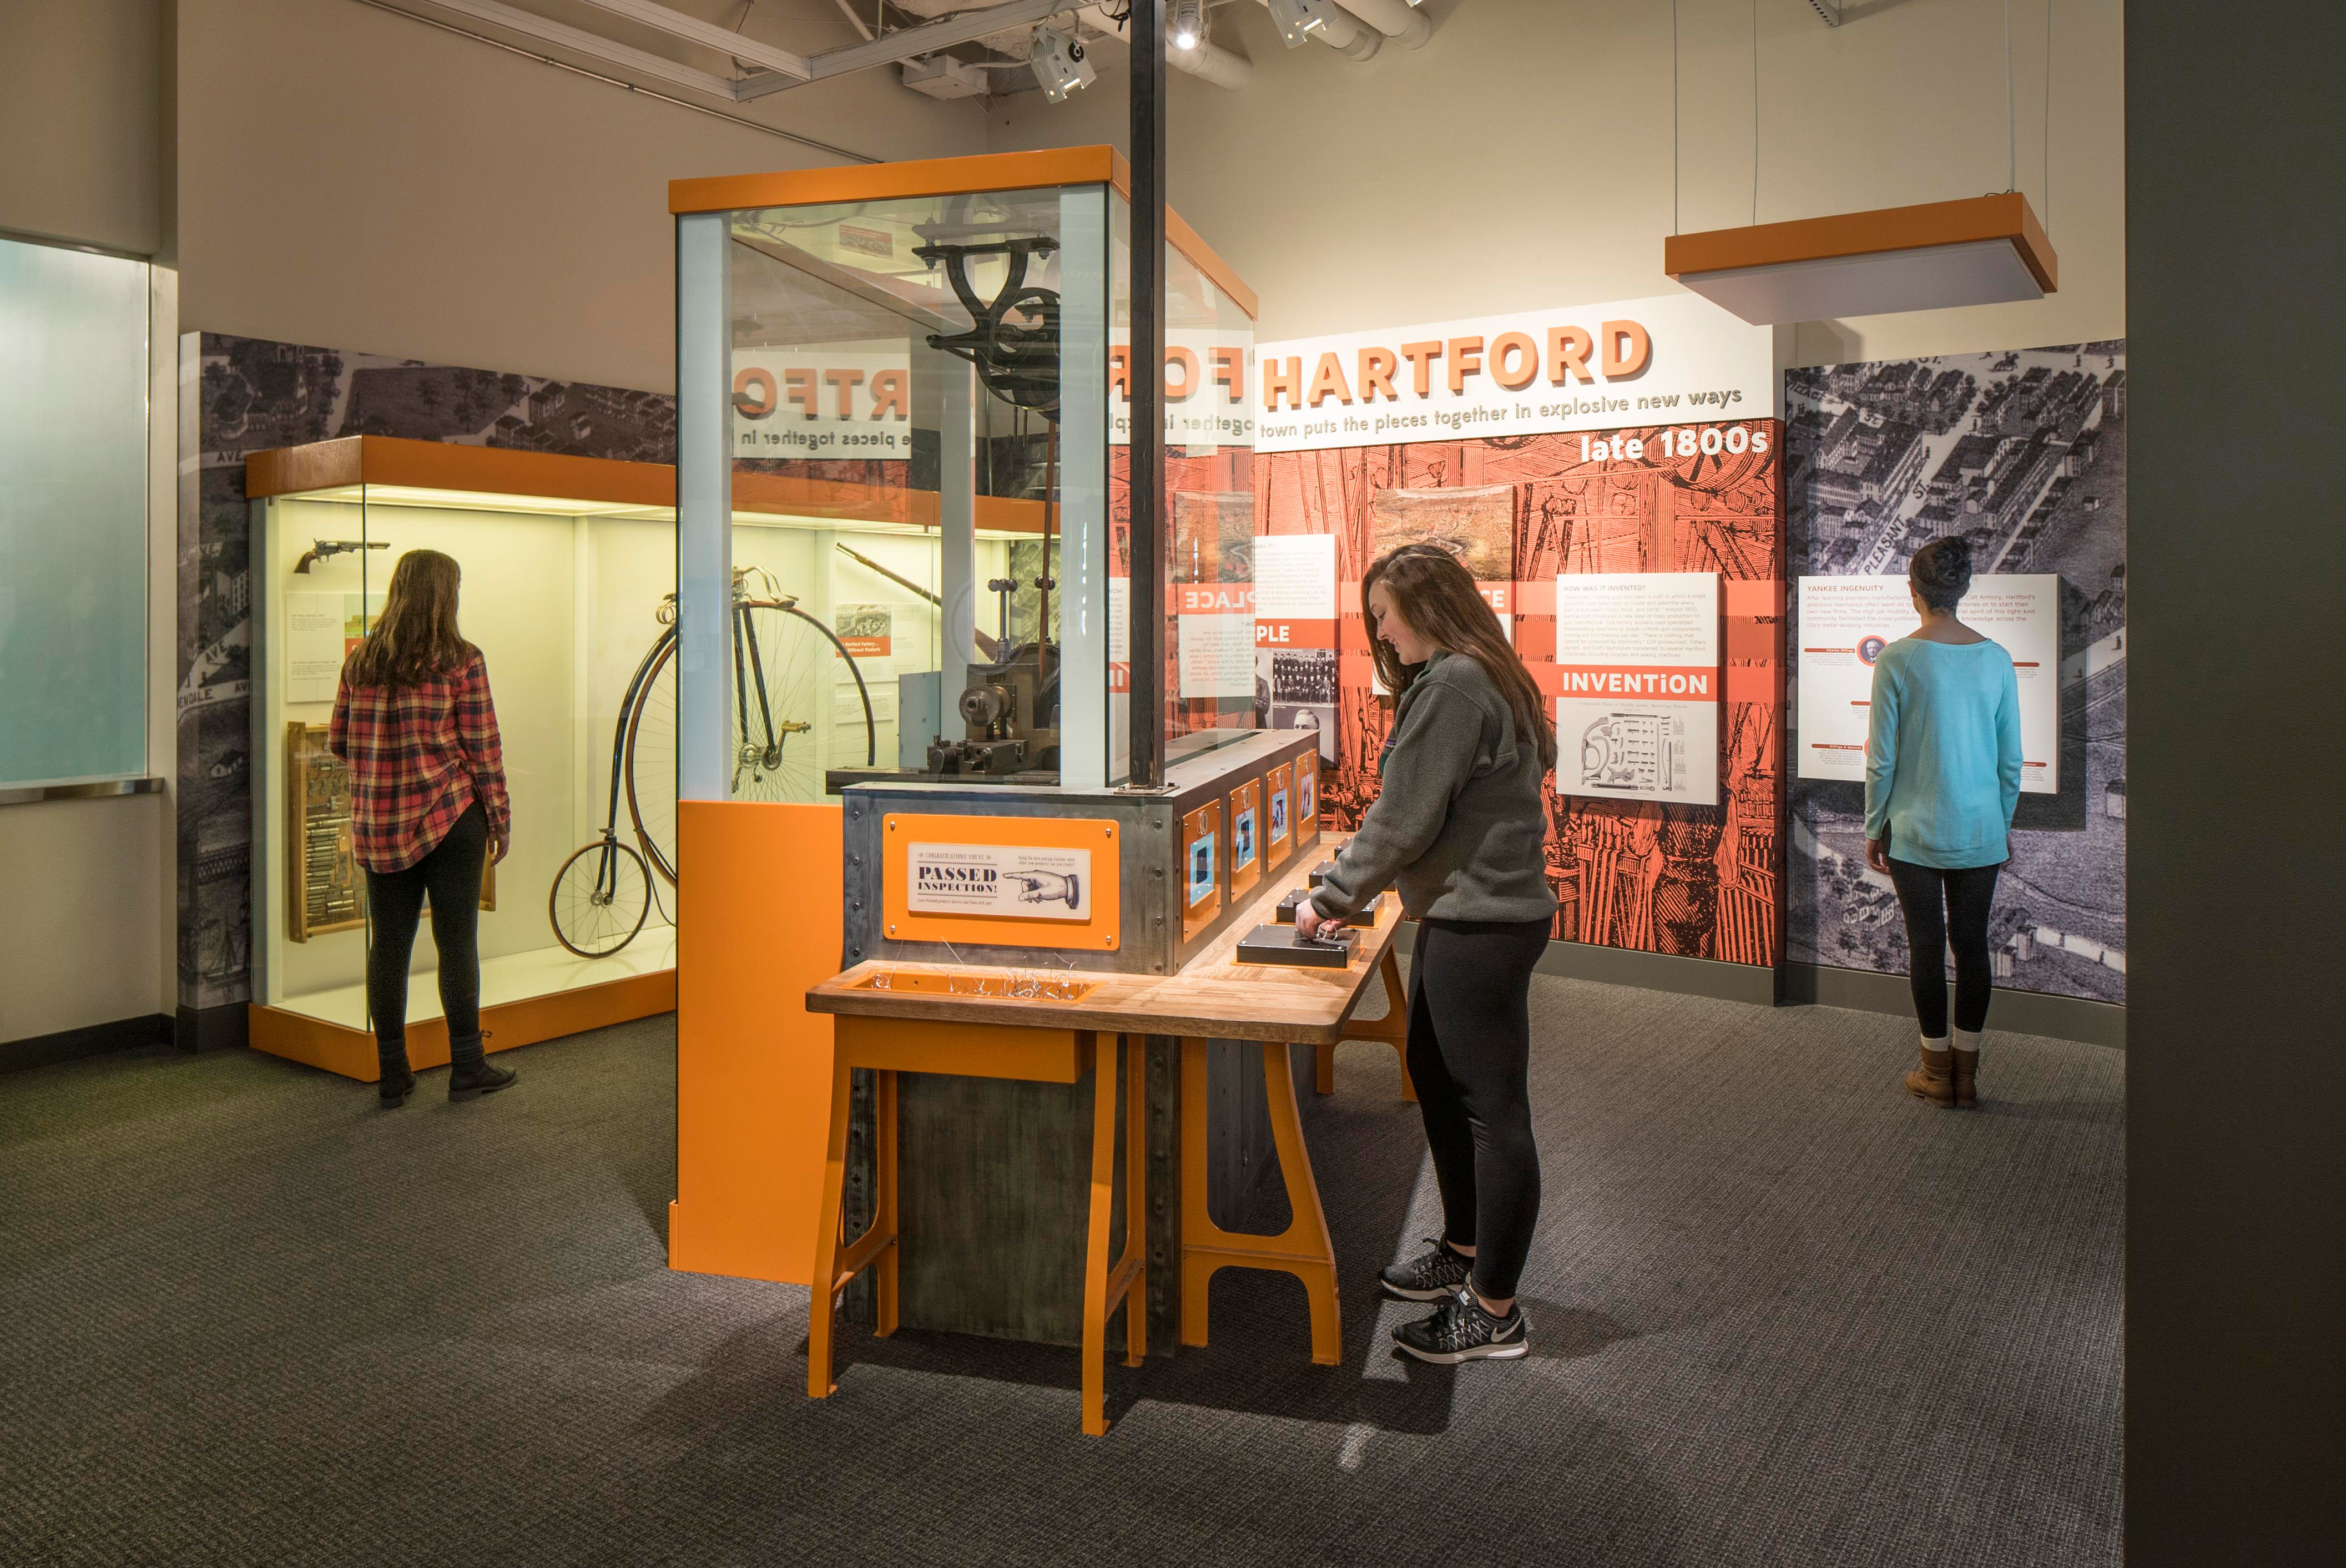 Places of Invention exhibition's Hartford, Connecticut, late 1800s case study area